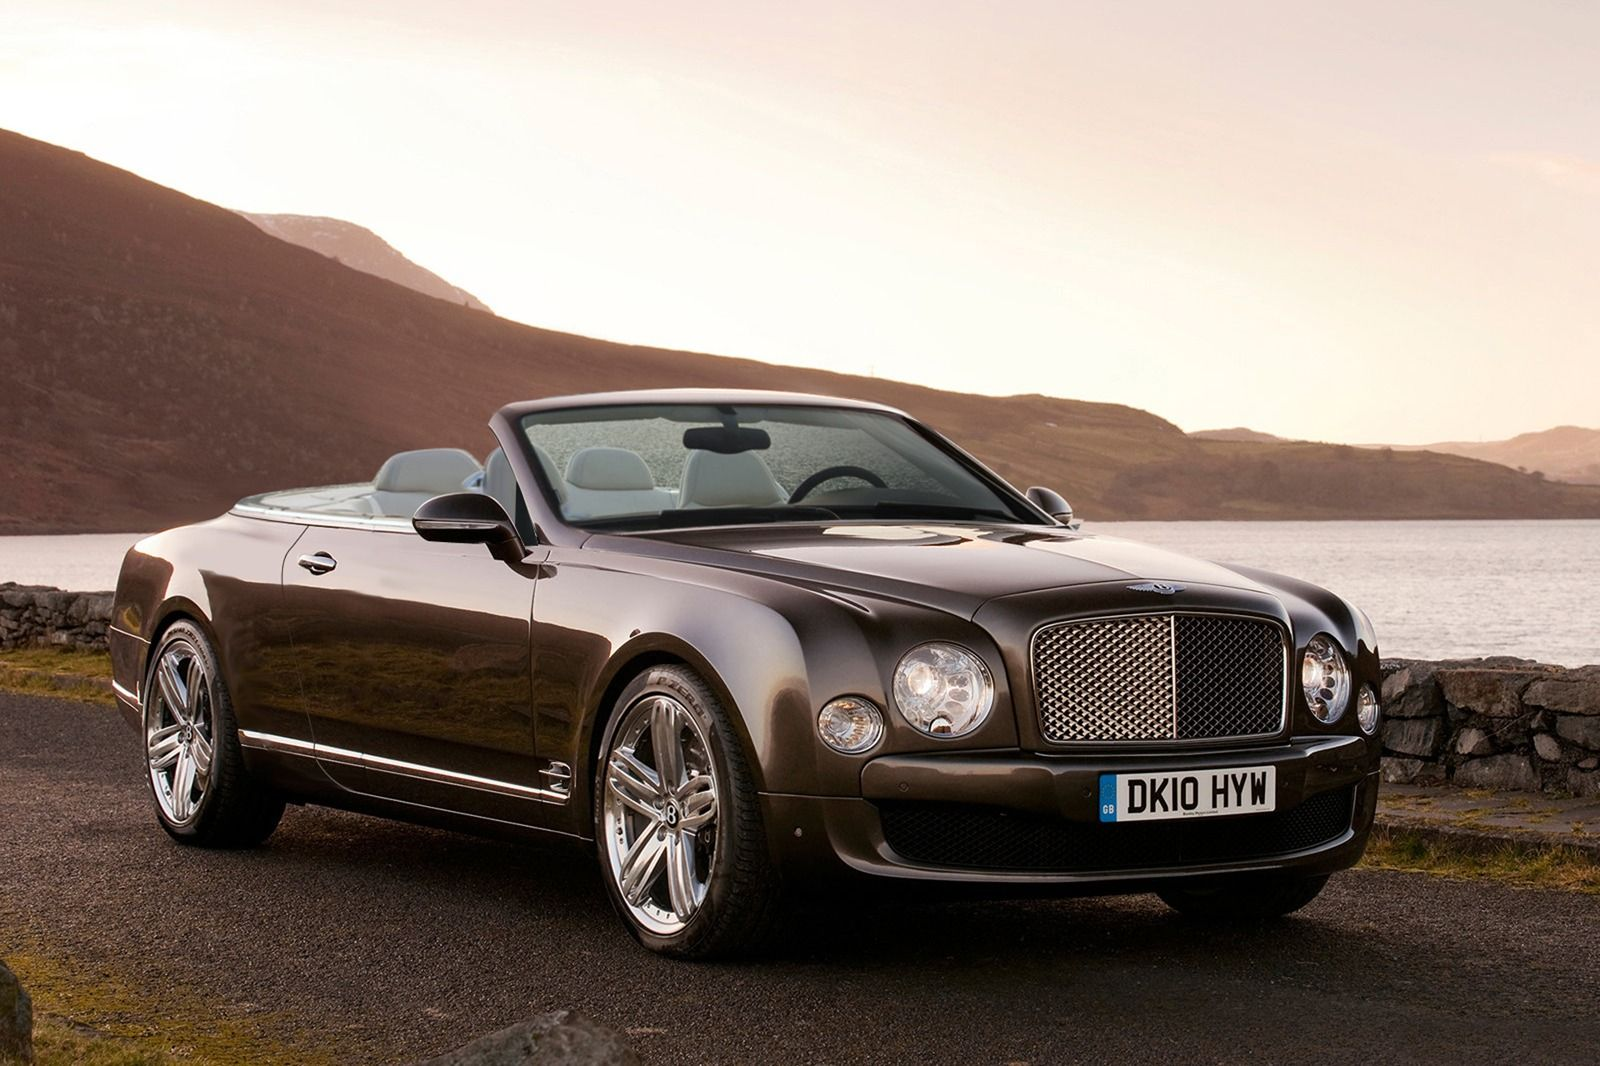 wallpapers cars rating continental com price copyright gt topcarrating top bentley added car